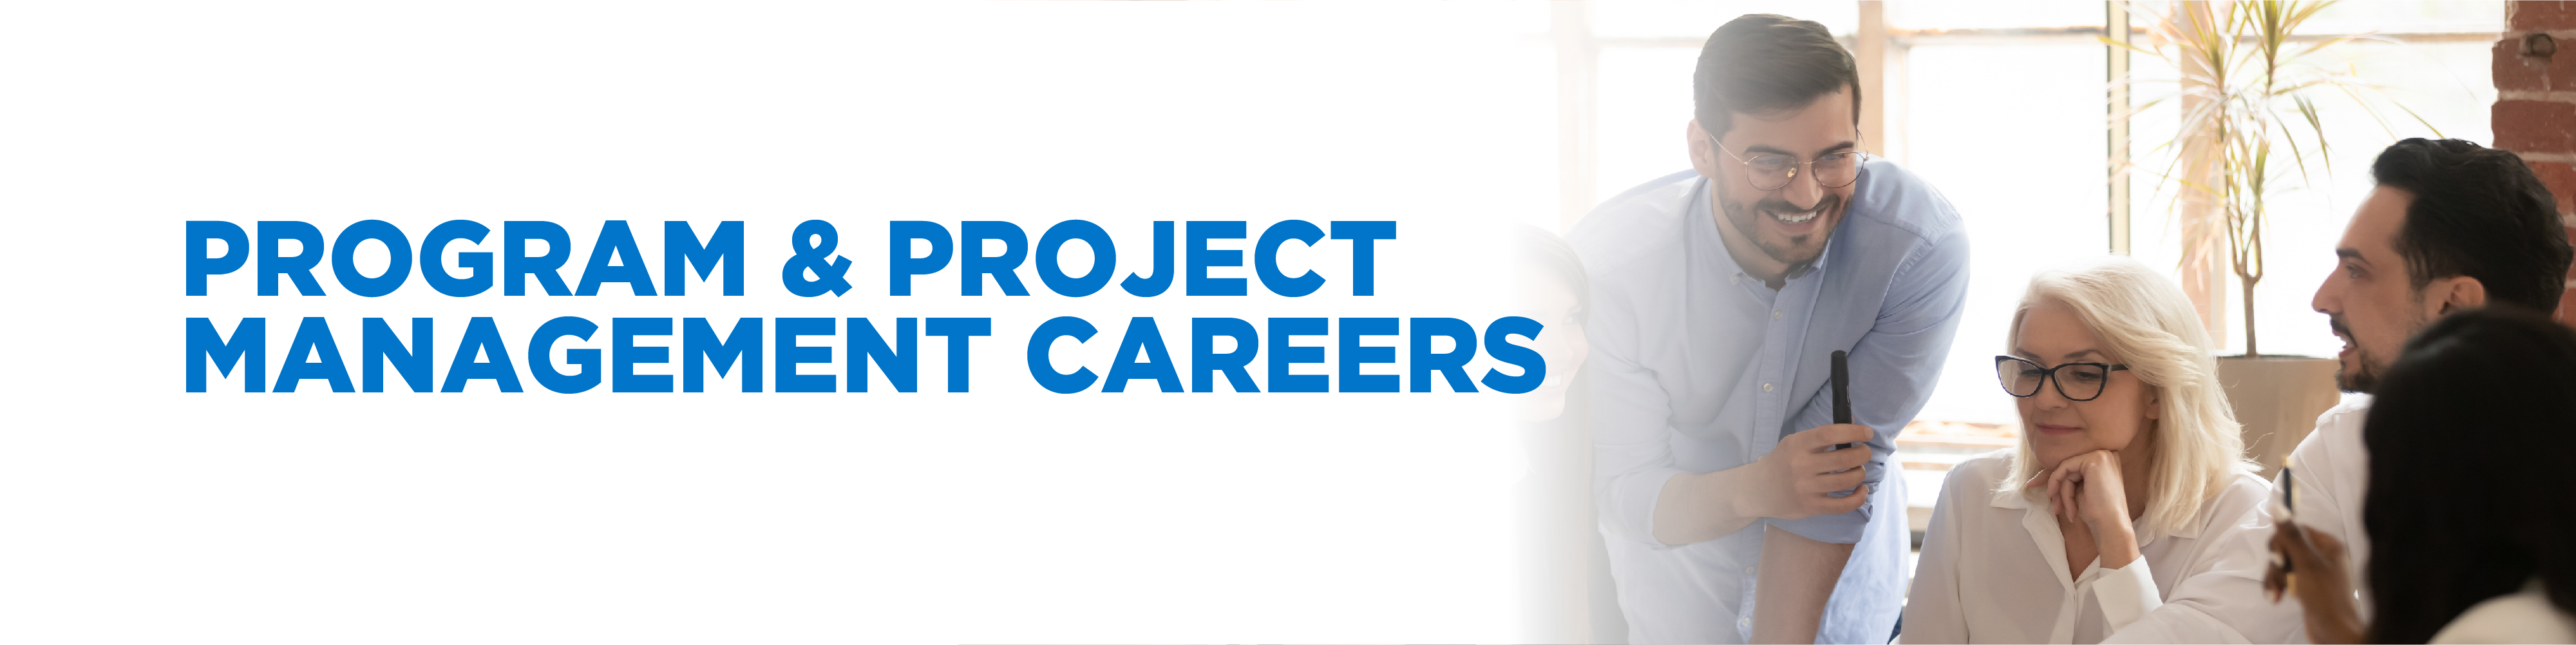 Program/Project Management Careers